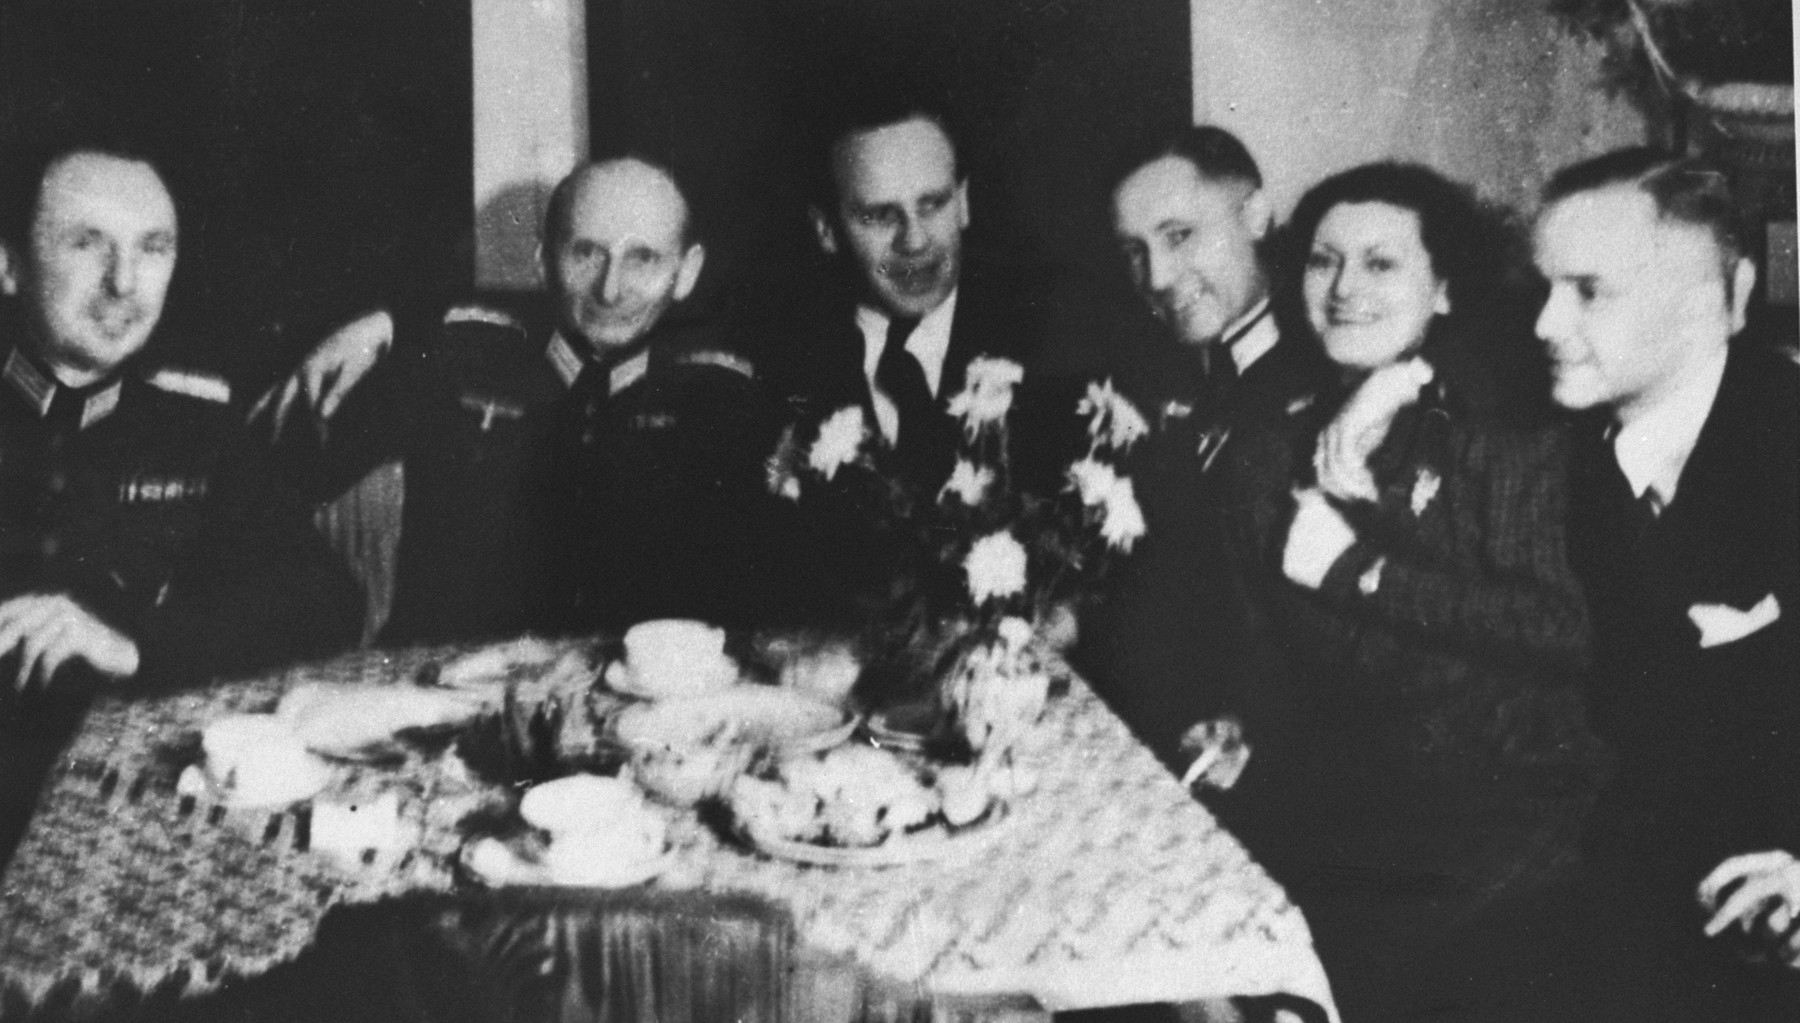 Oskar Schindler (center) enjoys himself at a dinner party in Krakow with German army officers.    At parties like this, Schindler made contact with various SS and German officials, which often led to tips about impending deportations that enabled him to save his laborers.